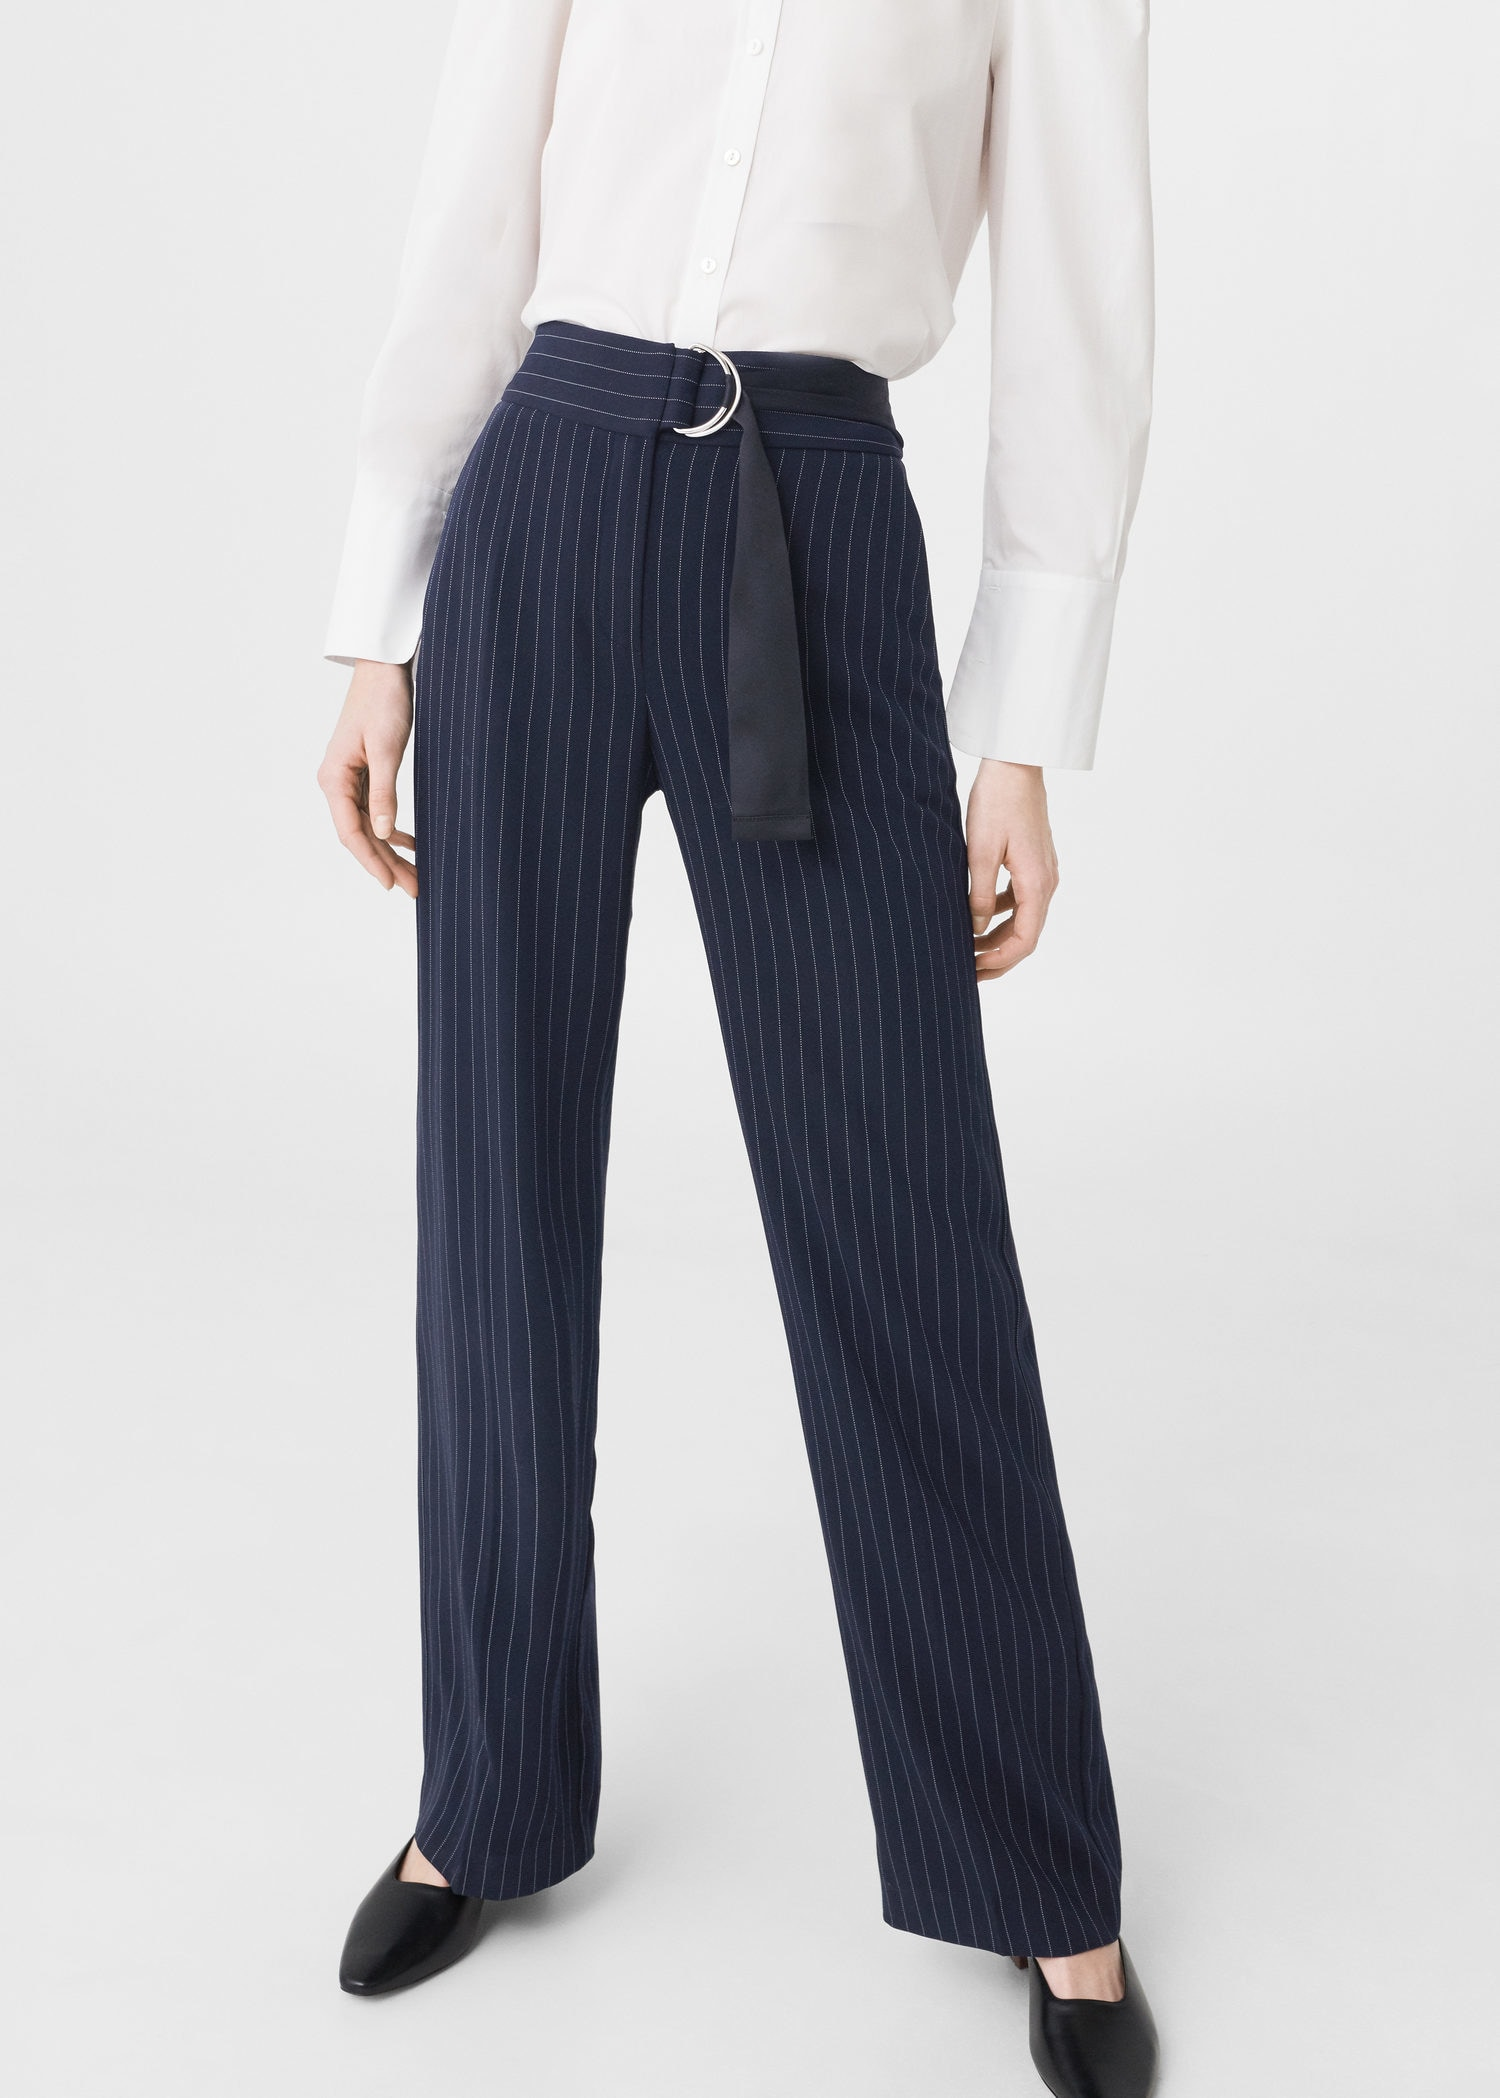 Chalk-stripe pants - Women | MANGO USA